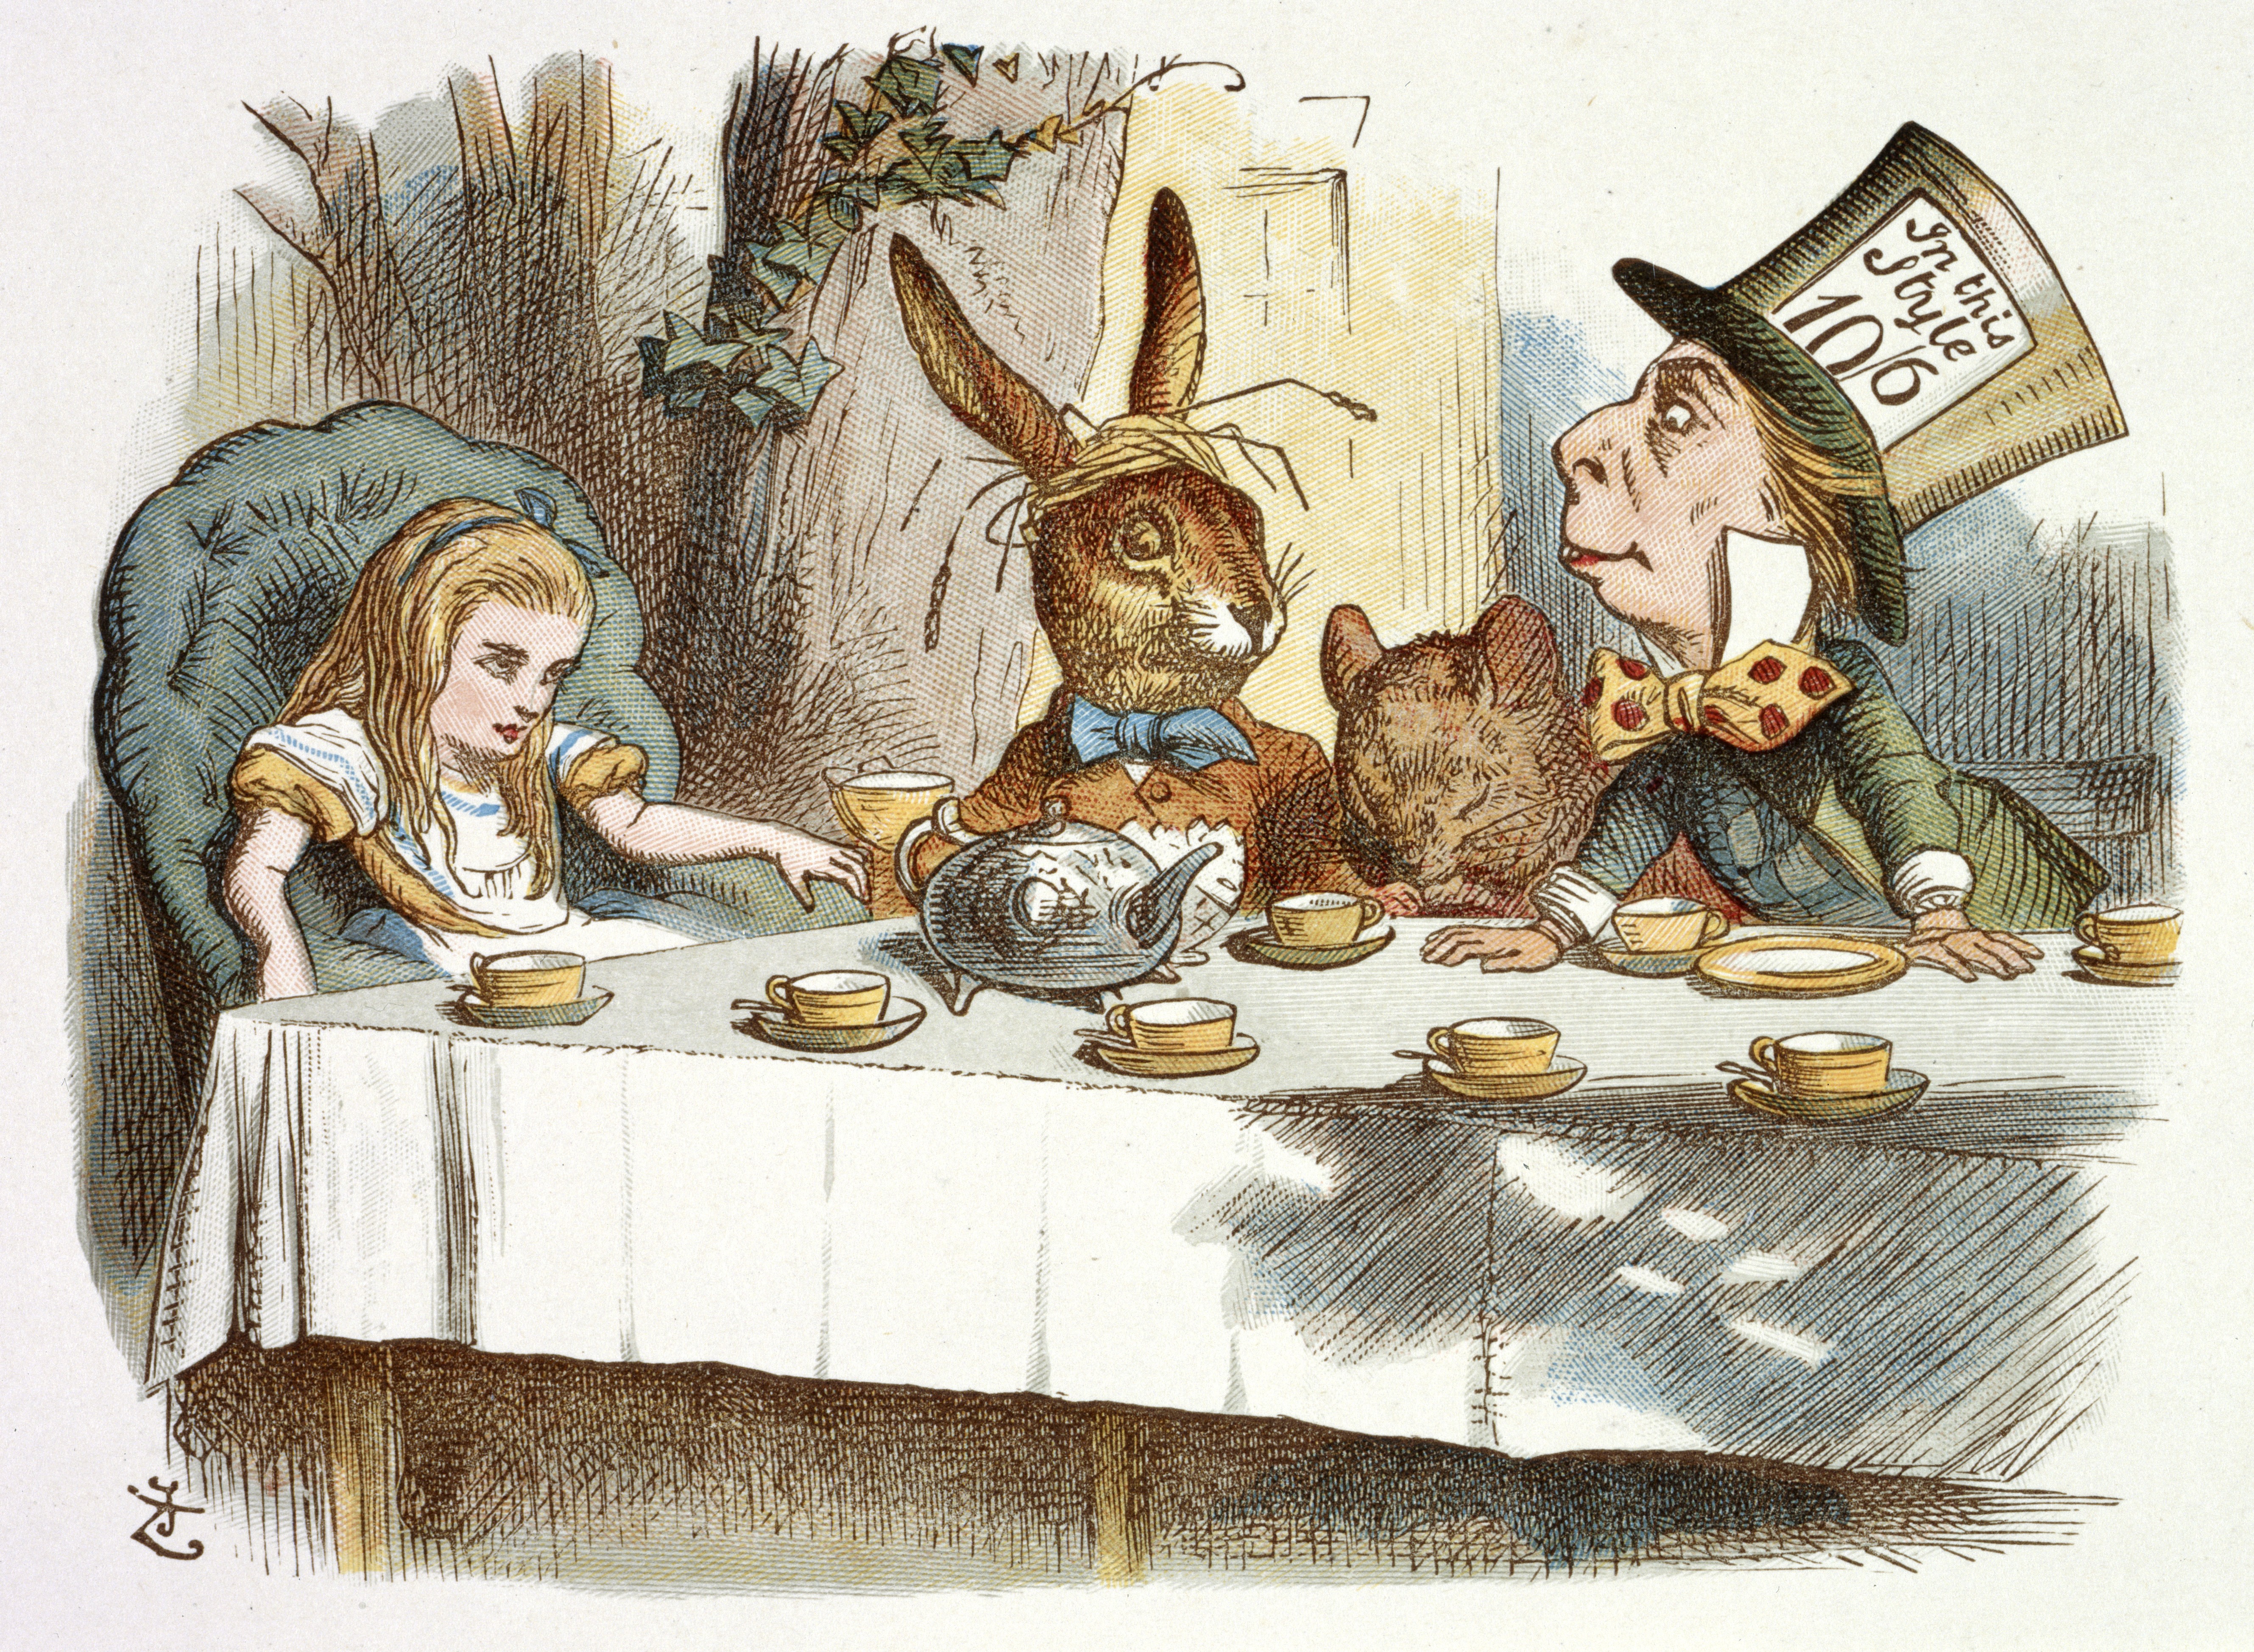 Discovering Children's Literature: a scene from the Mad Hatter's Tea Party in Alice in Wonderland